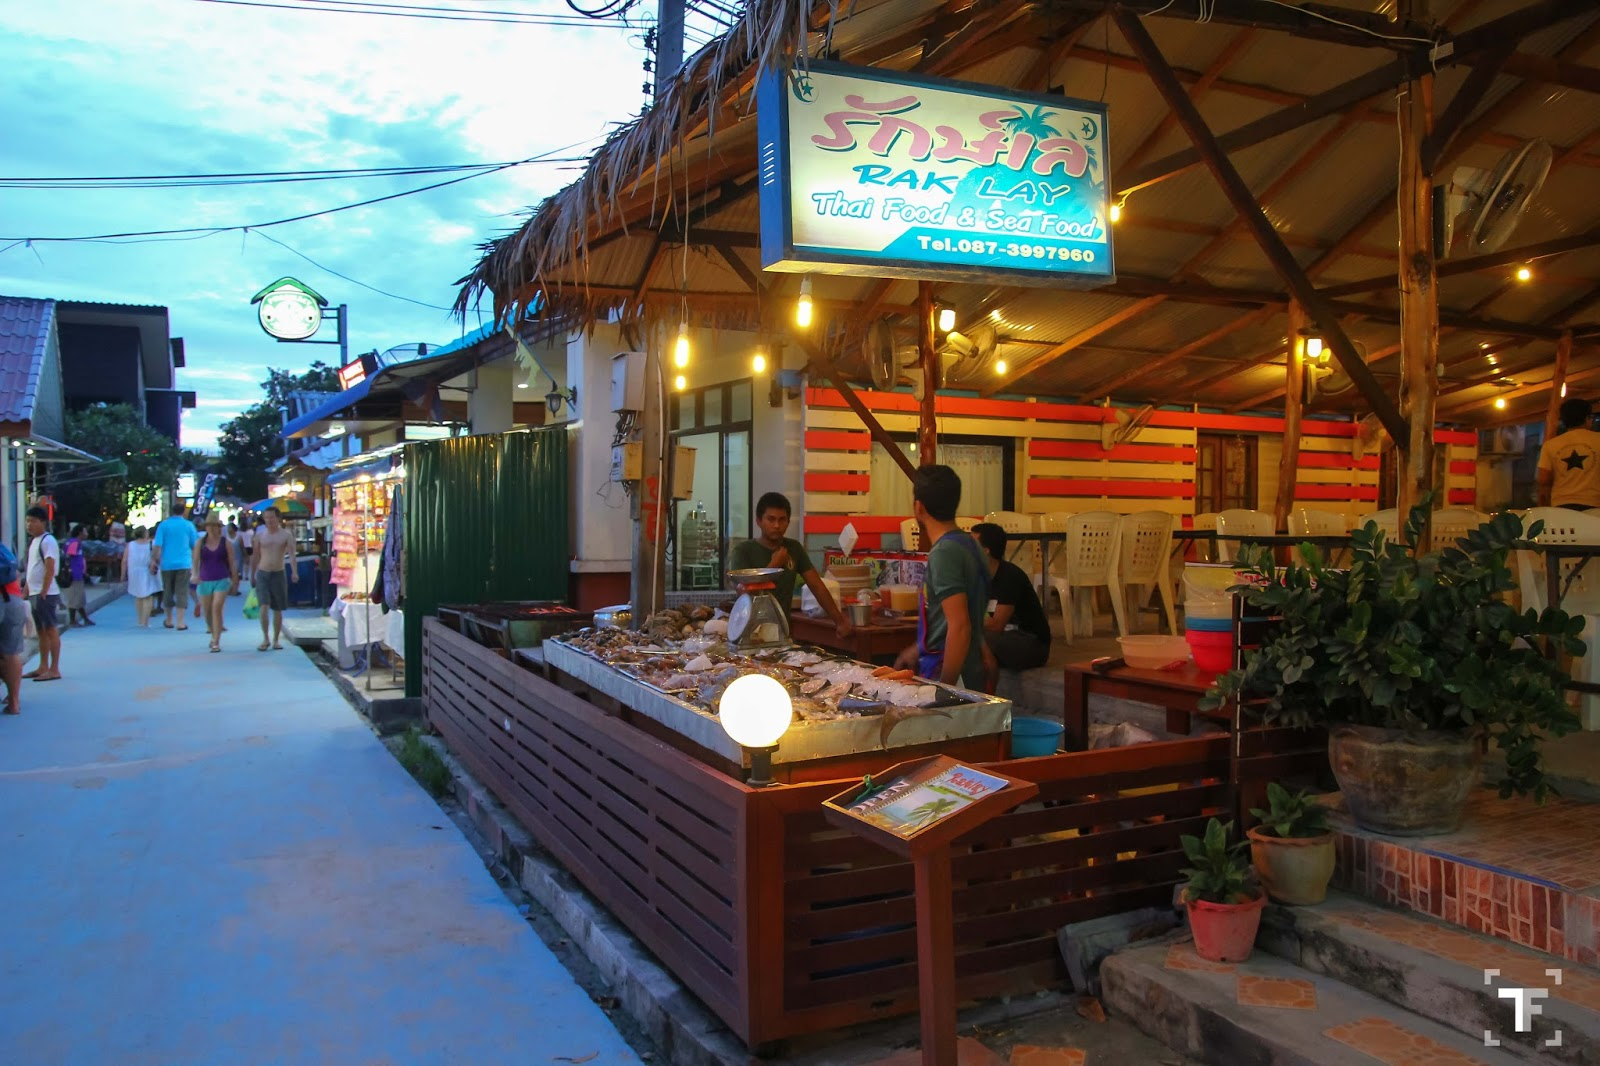 Rak Lay Restaurant Is One Of The More Por Dining Options Here In Koh Lipe Opened For Lunch As Well Dinner Restaurants Offers A Variety Thai